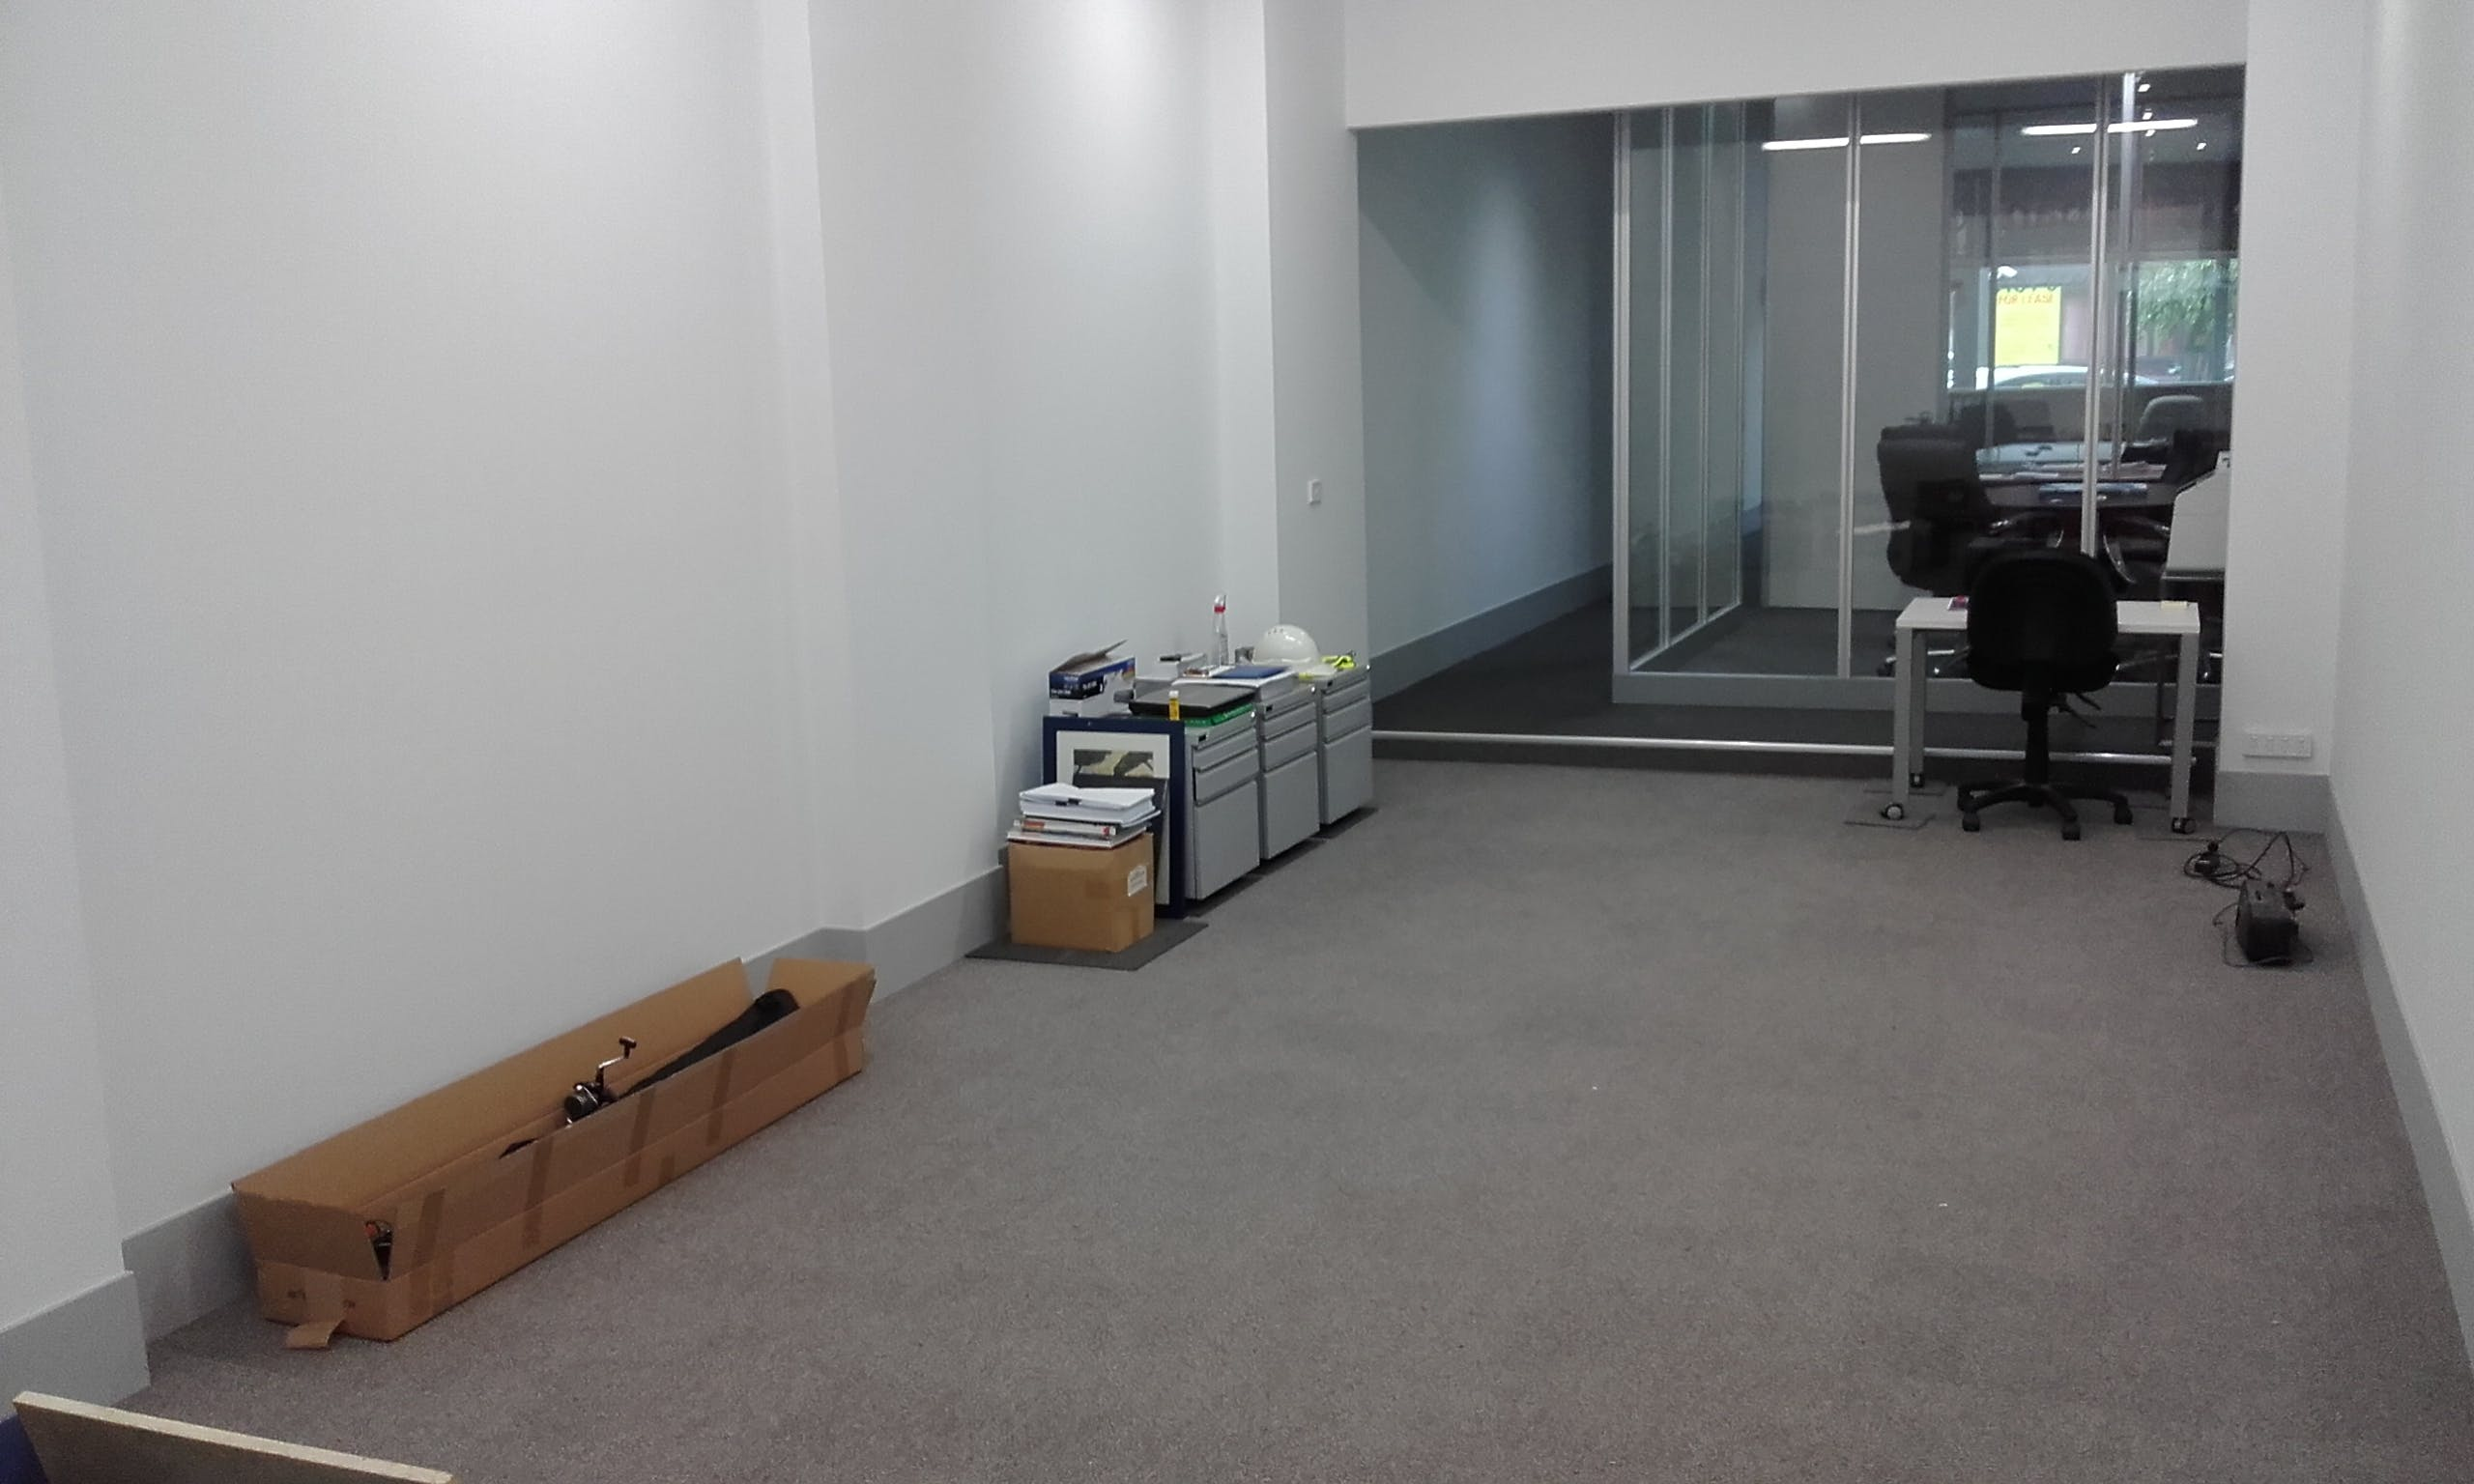 Open Space, multi-use area at Emerald City Investments Pty Ltd, image 2